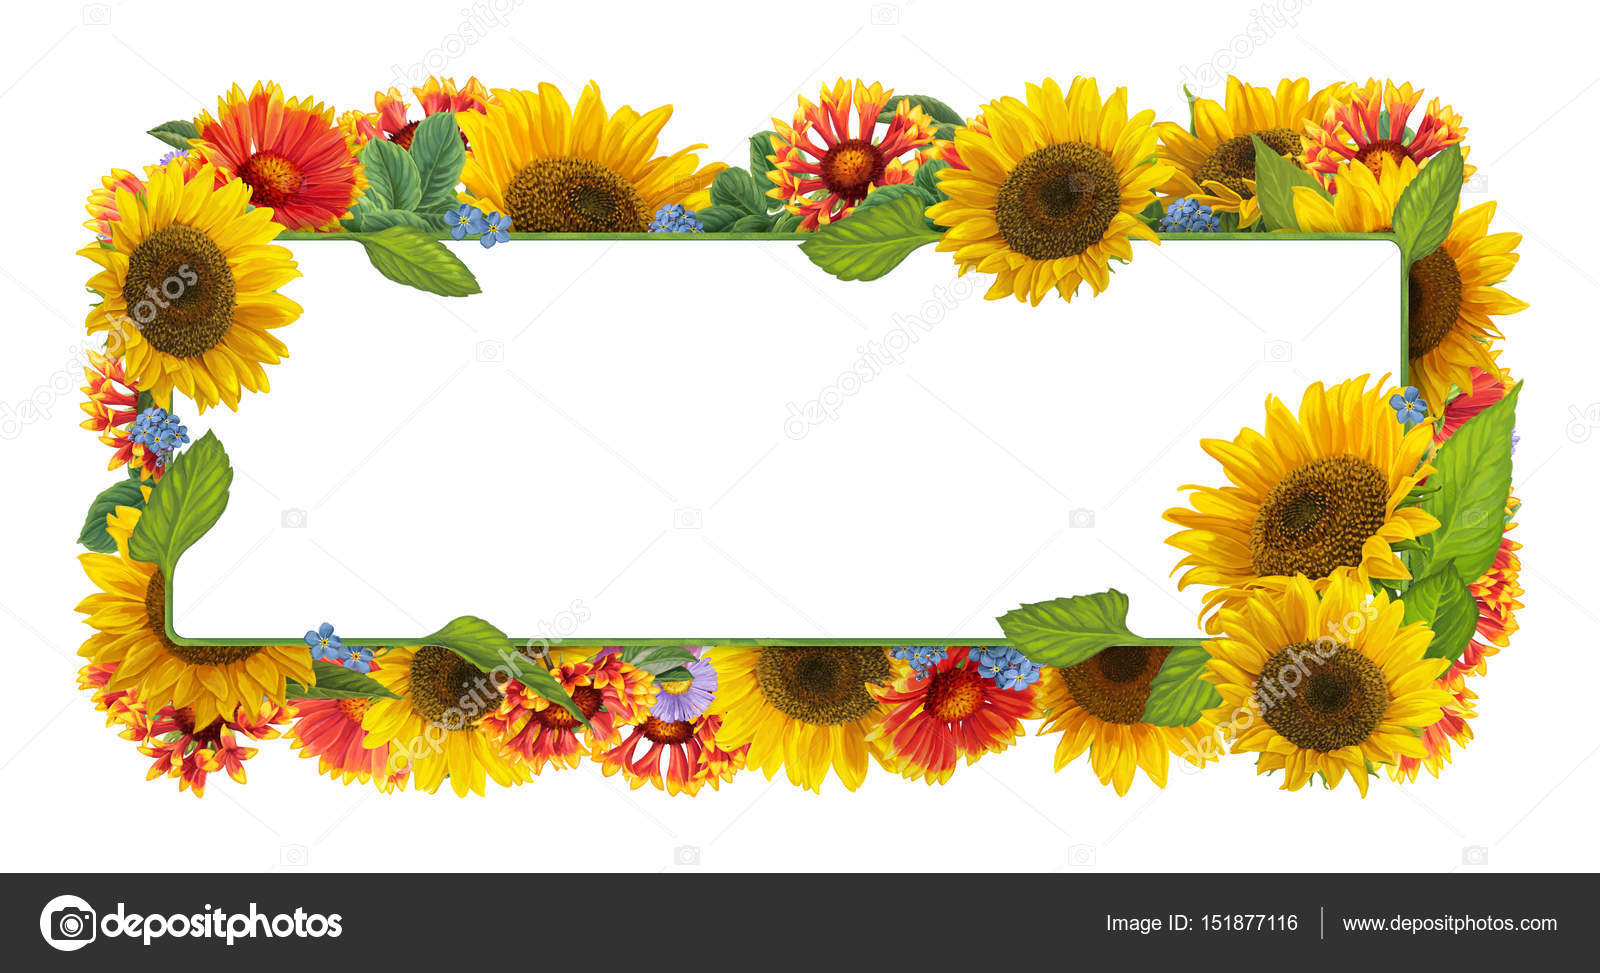 Cartoon Frame With Sunflowers On White Background Photo By Agaes8080